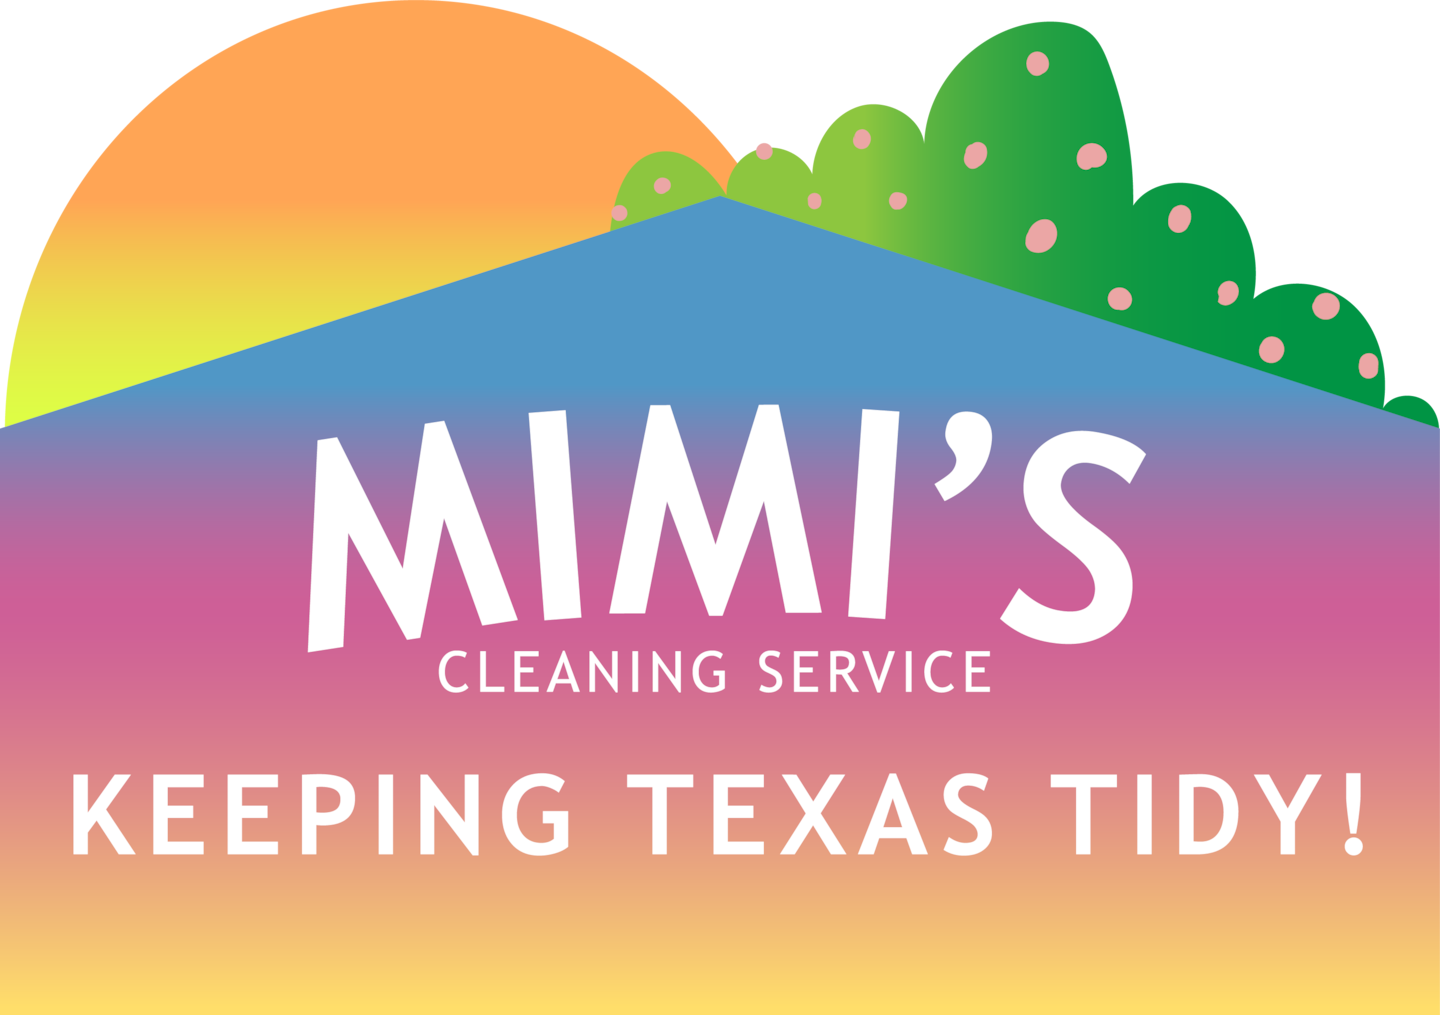 Mimi's Cleaning Service